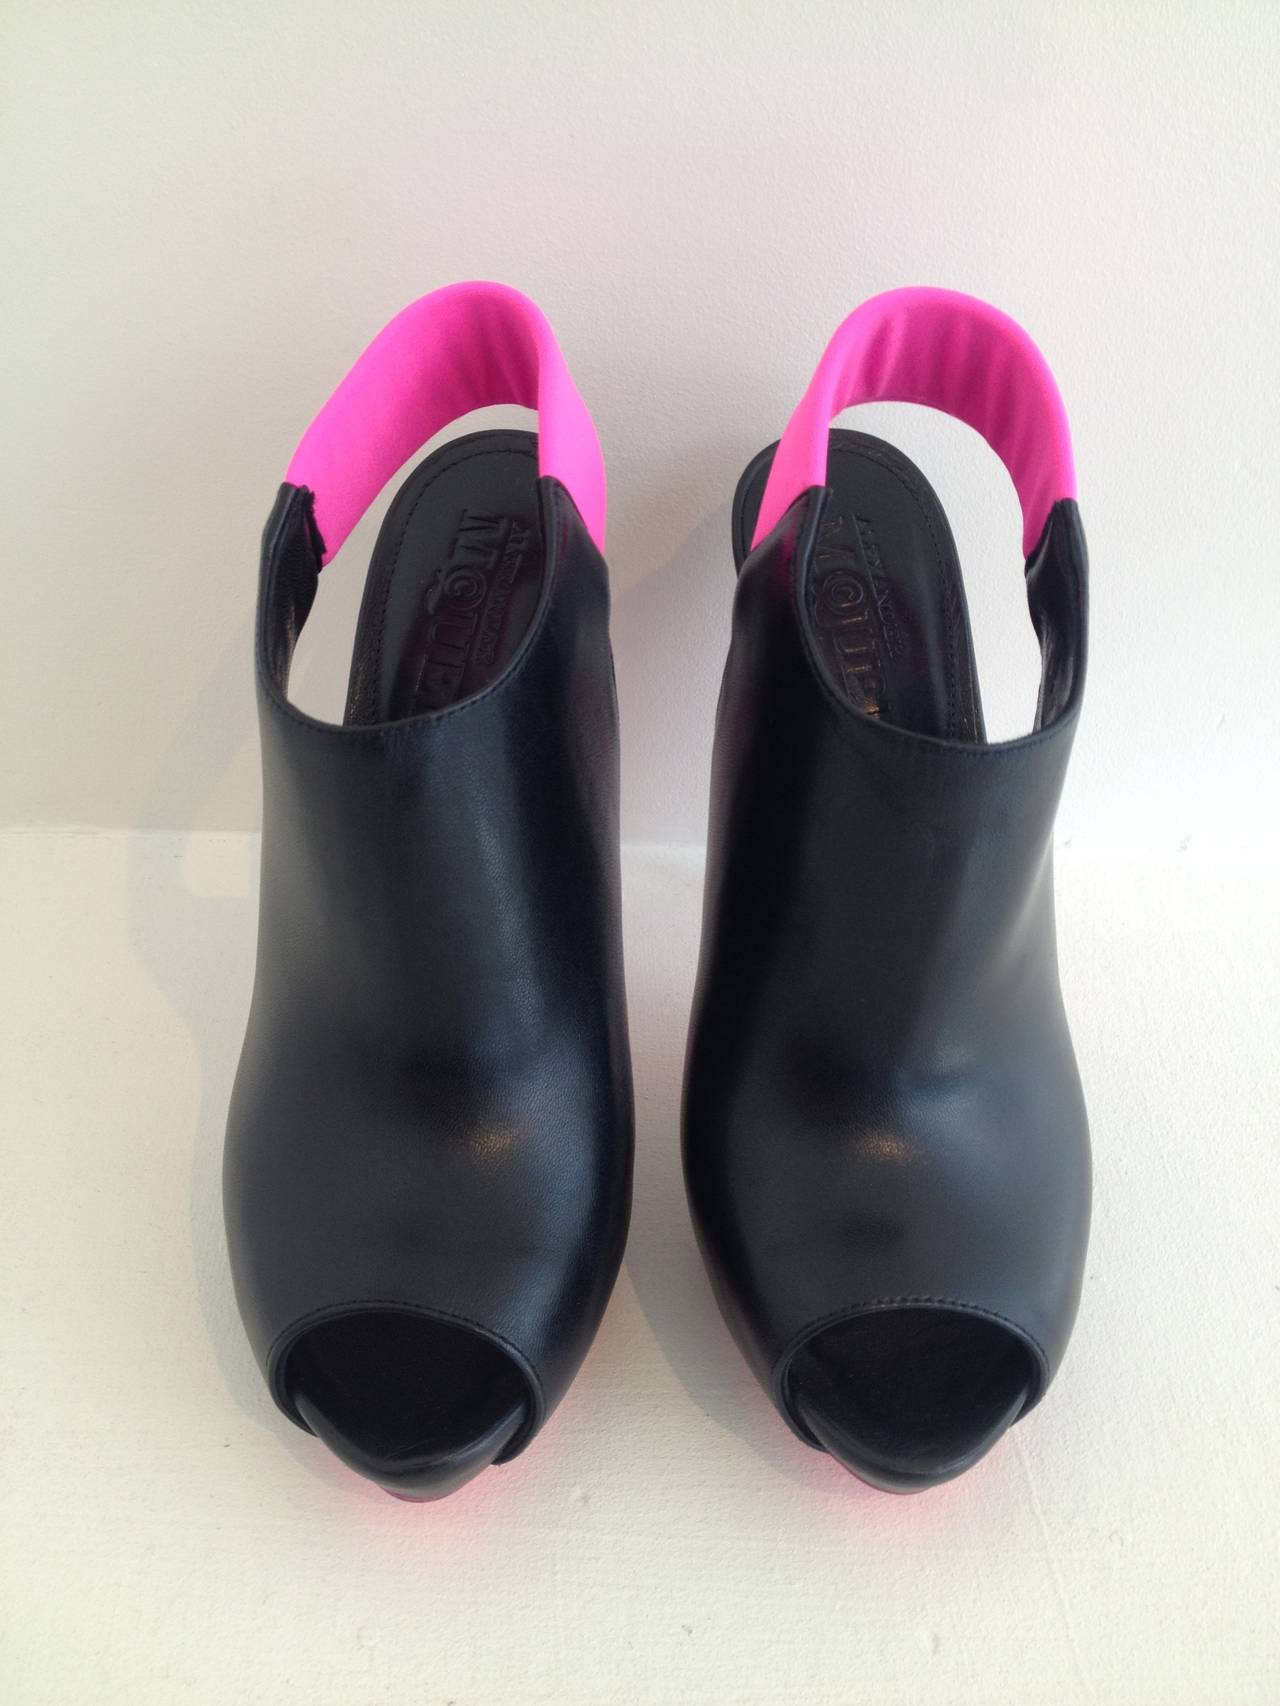 Alexander McQueen Black and Hot Pink Stiletto Booties In New never worn Condition For Sale In San Francisco, CA